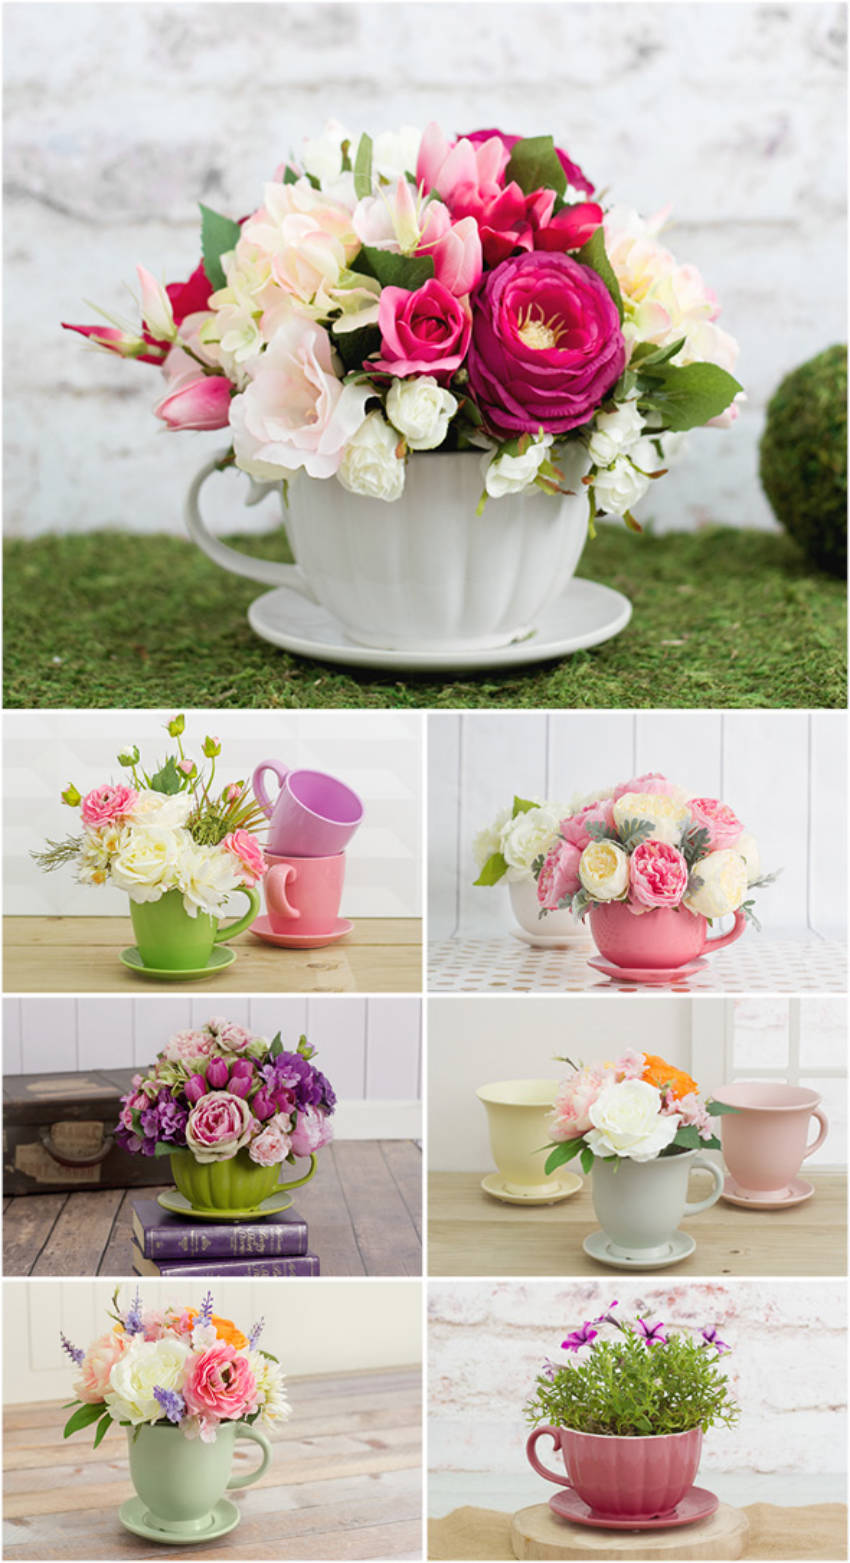 Floral teacup arrangements to show some love on Mother's Day!